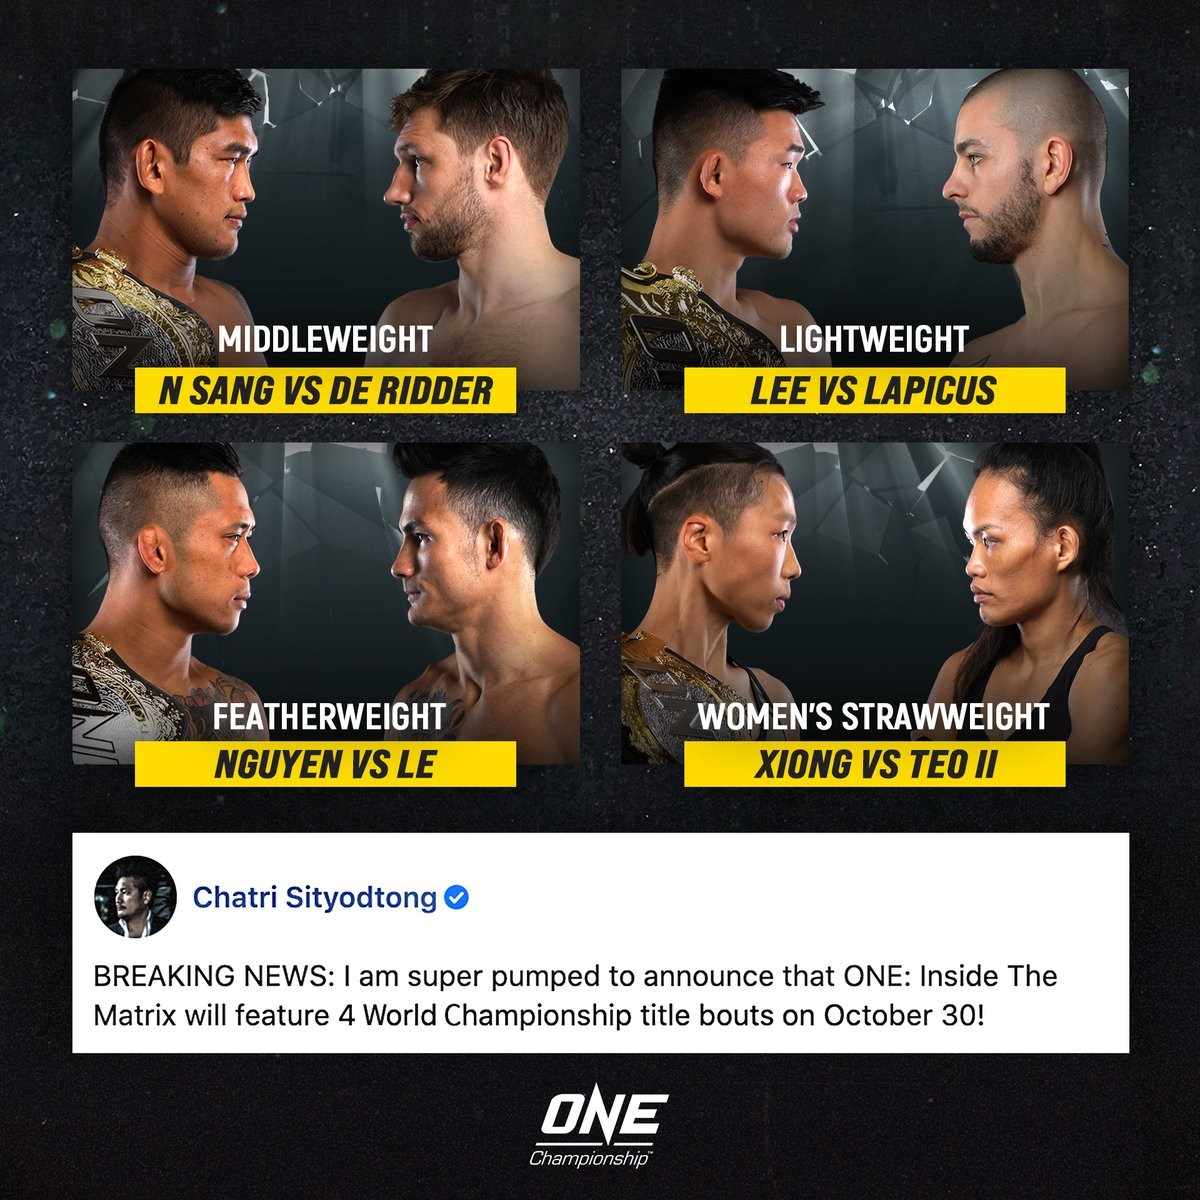 🏆 4 WORLD TITLE BOUTS 🏆 ONE Championship's biggest event of the year has an official date! @yodchatri @AungLANsang @ChristianLeeMMA @MartinNguyenMMA @ThanhLeMMA #InsideTheMatrix #WeAreONE #ONEChampionship https://t.co/YTawigXbIr